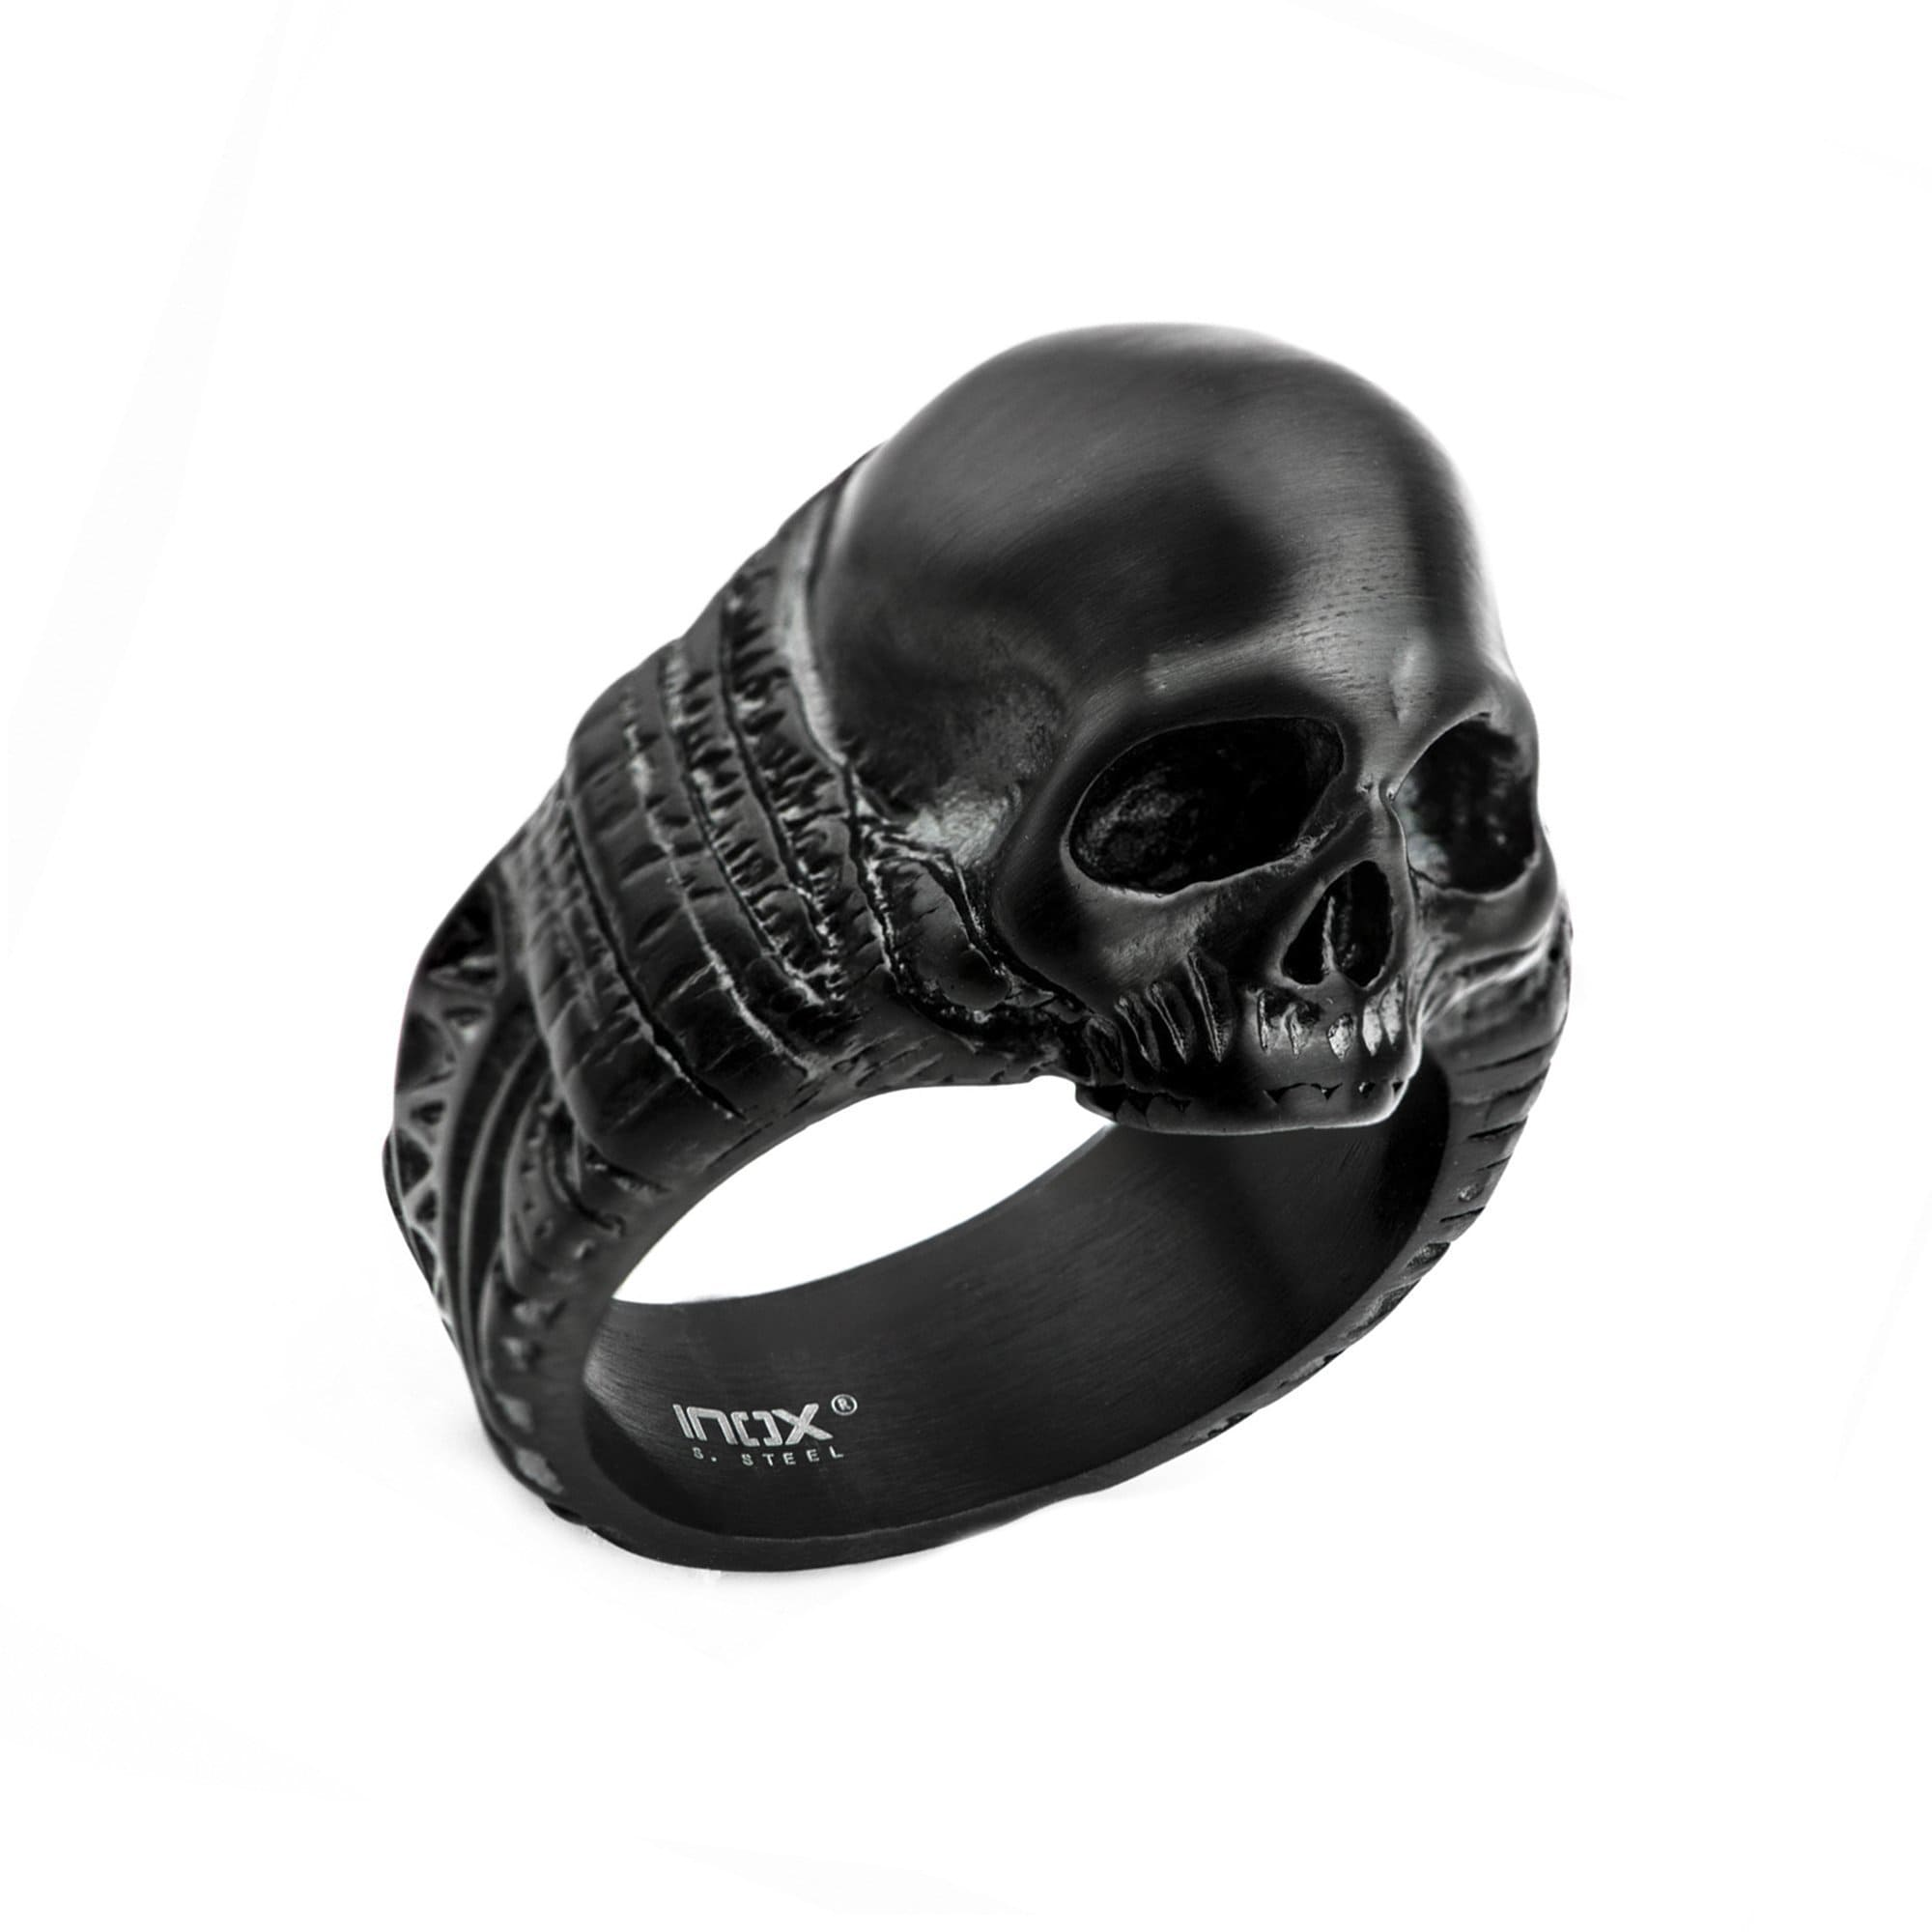 Black Stainless Steel Matte Finish Skull with Ancient Markings Ring